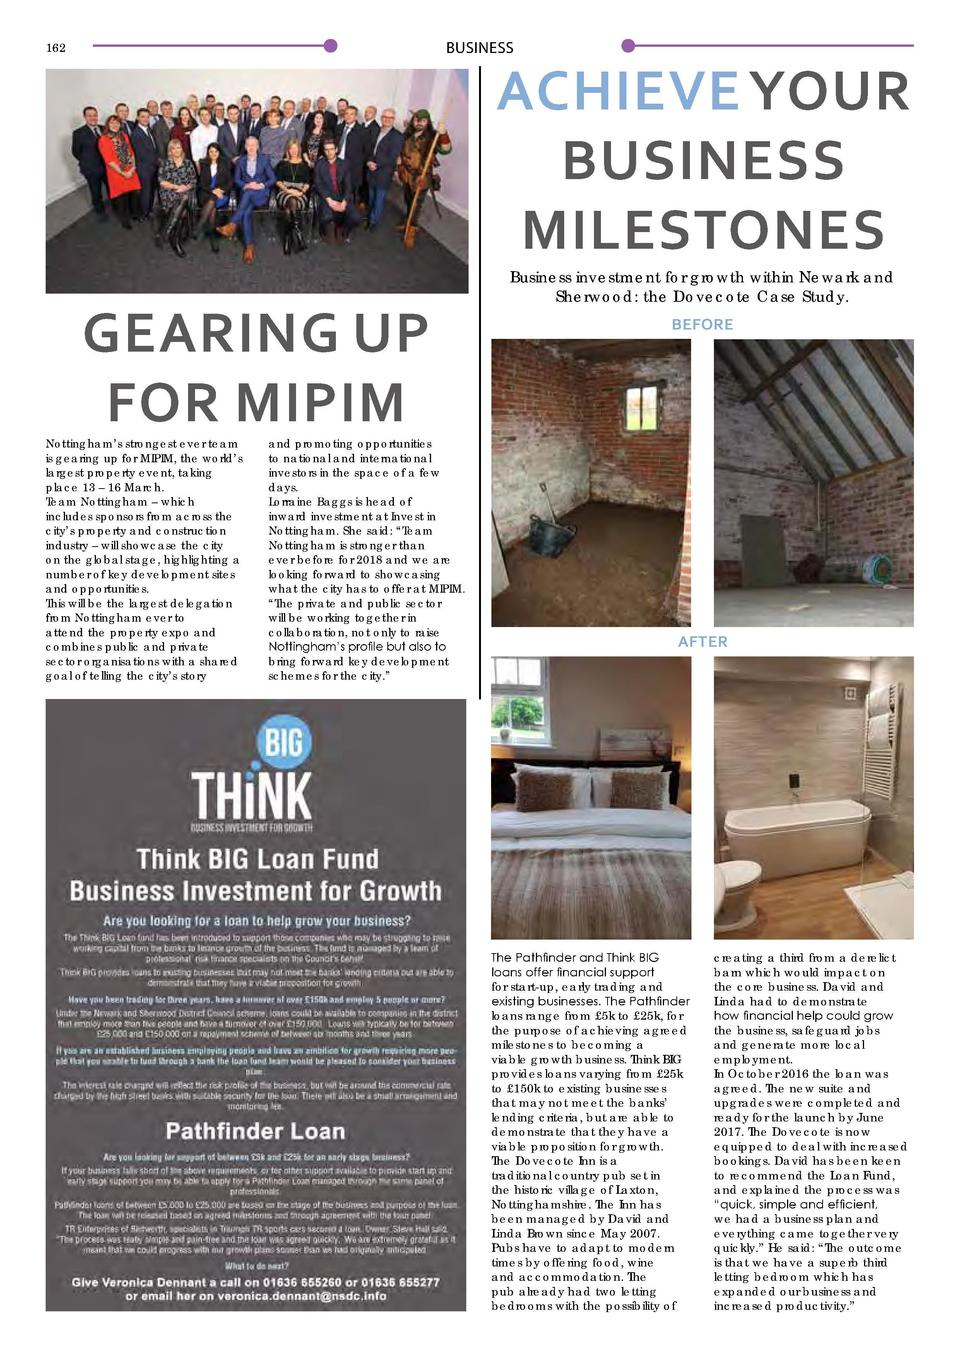 BUSINESS  162  ACHIEVE YOUR BUSINESS MILESTONES  GEARING UP FOR MIPIM  Nottingham   s strongest ever team is gearing up fo...